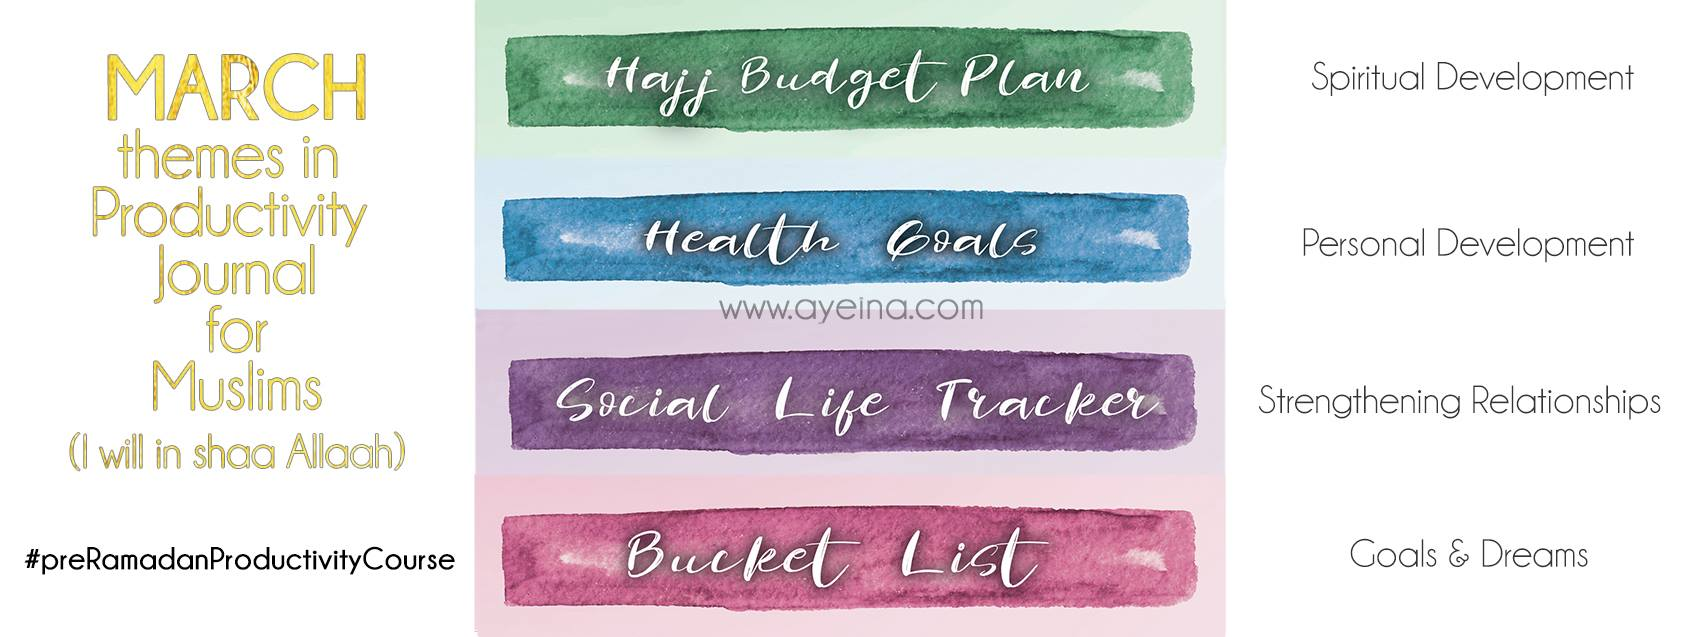 Productivity 6 Hajj Budgeting Health Goals Social Life Bucket List Ayeina